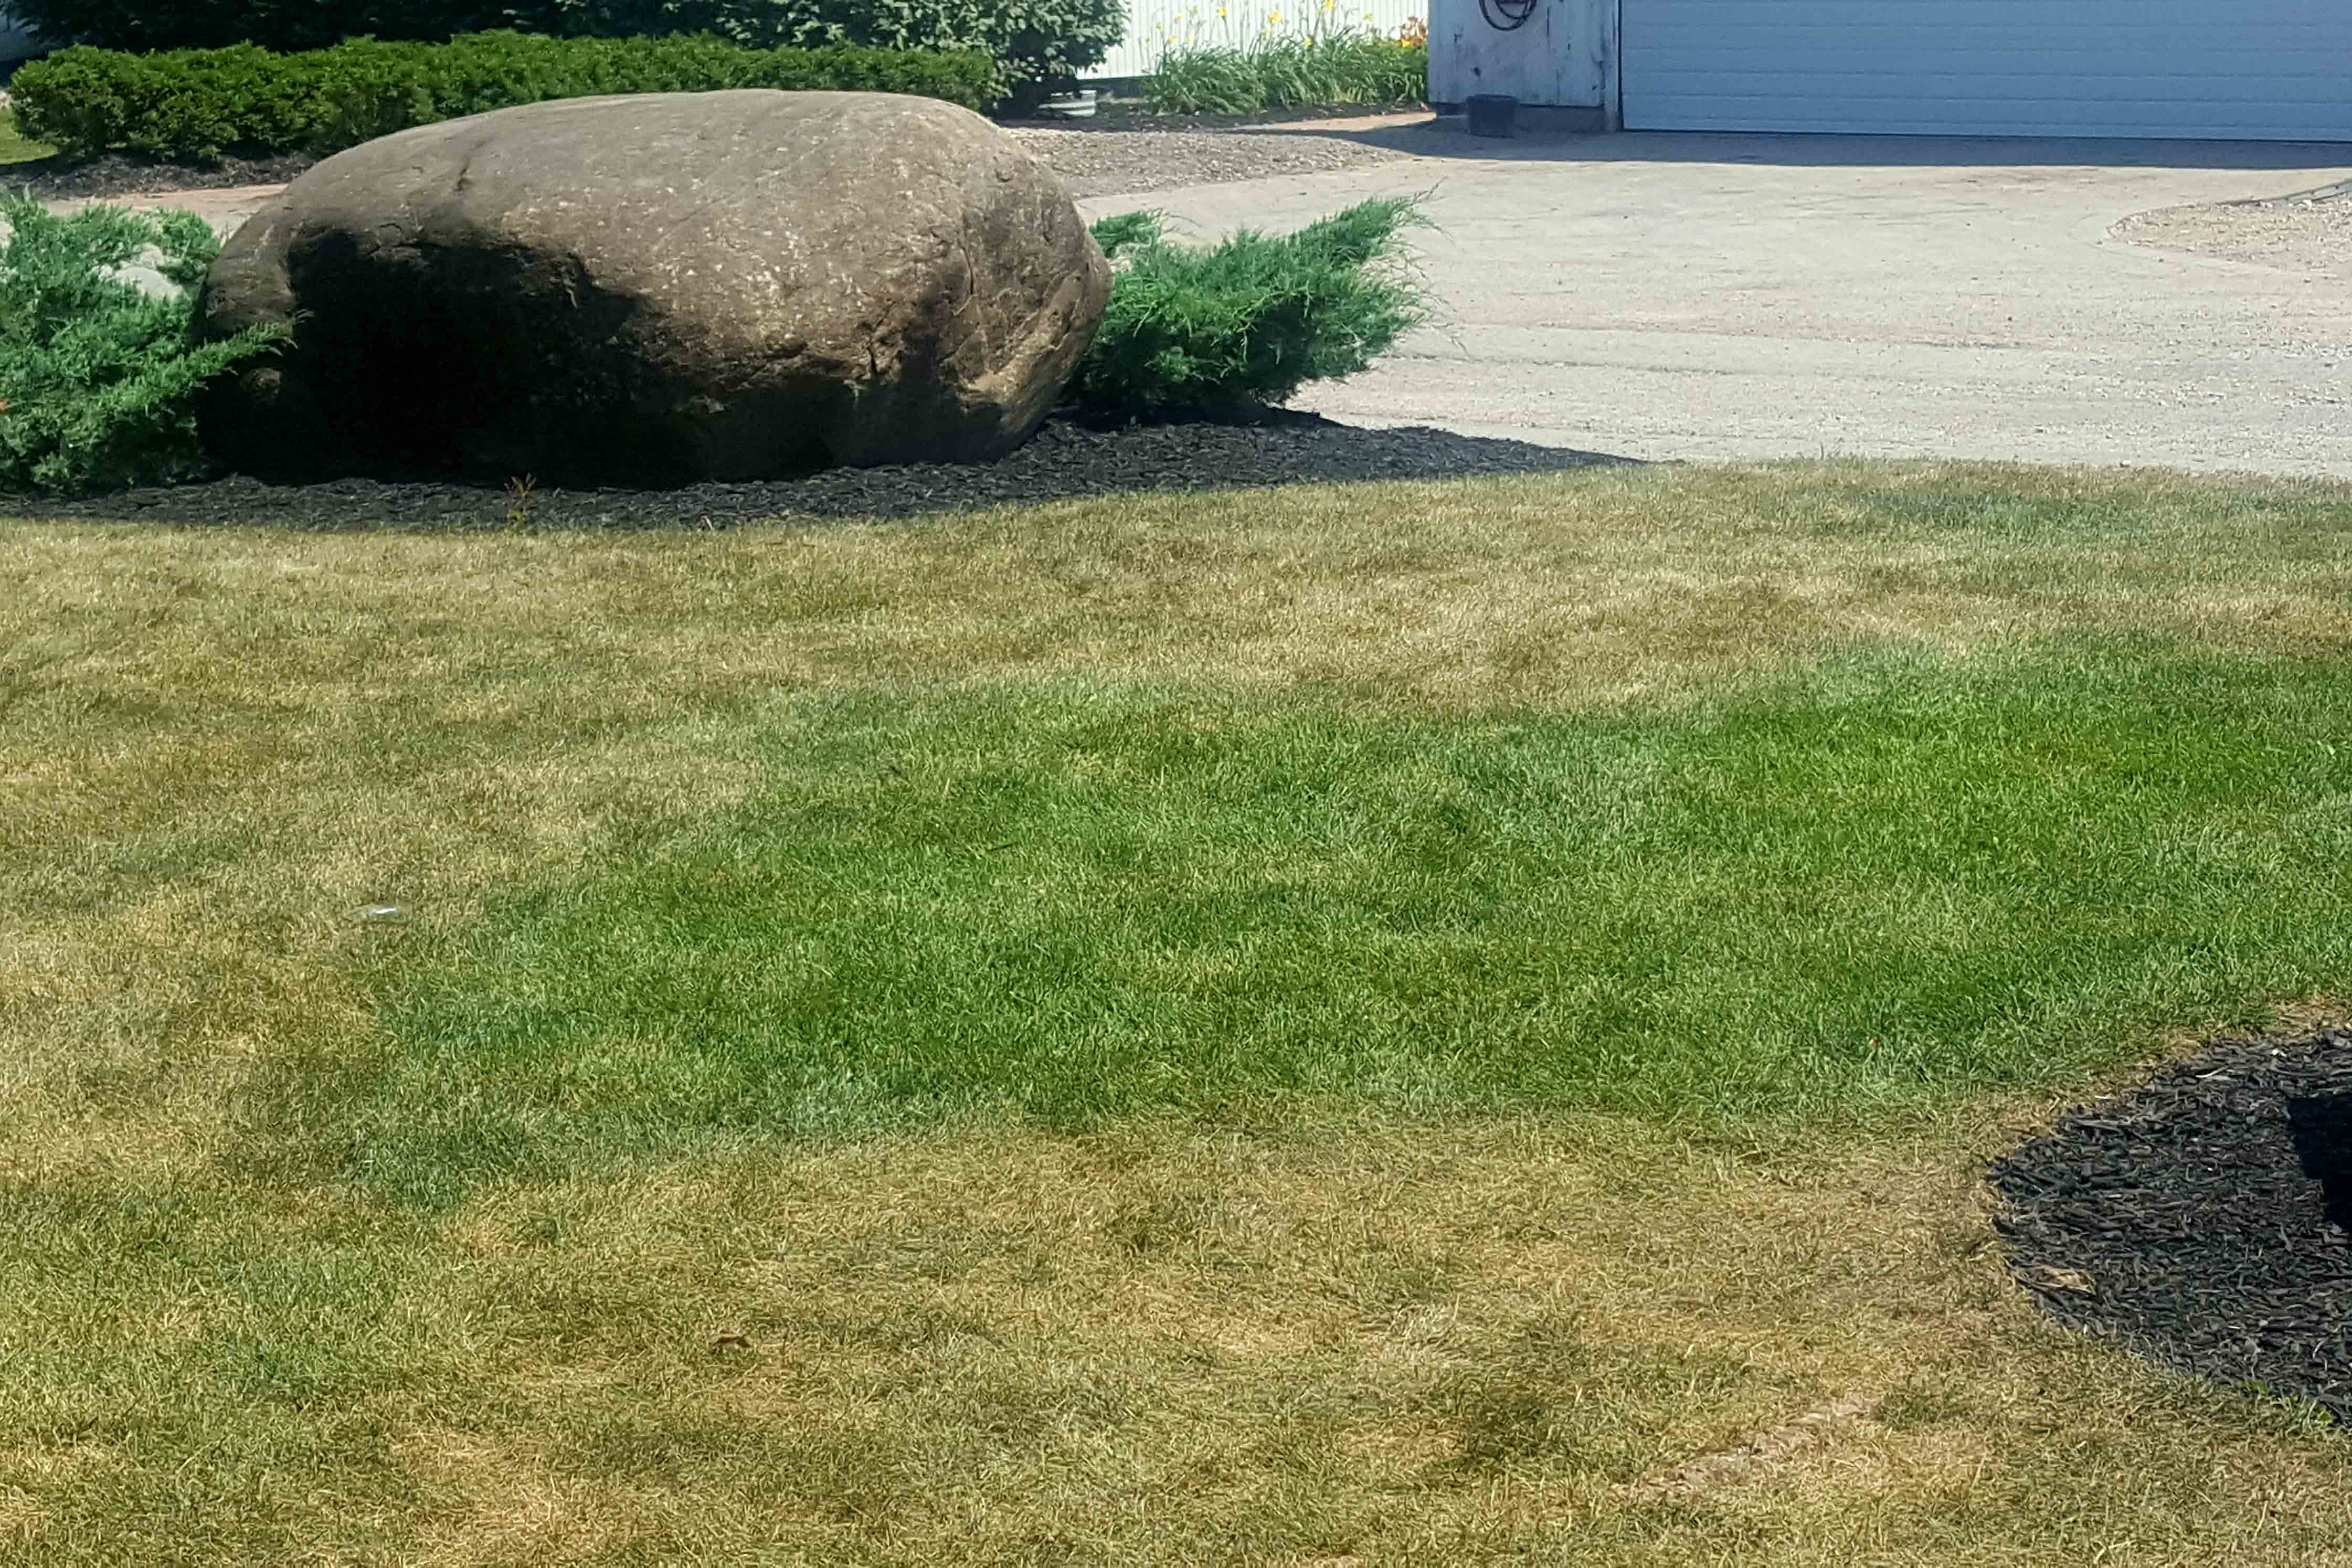 Brown lawns in summer caused by improper watering